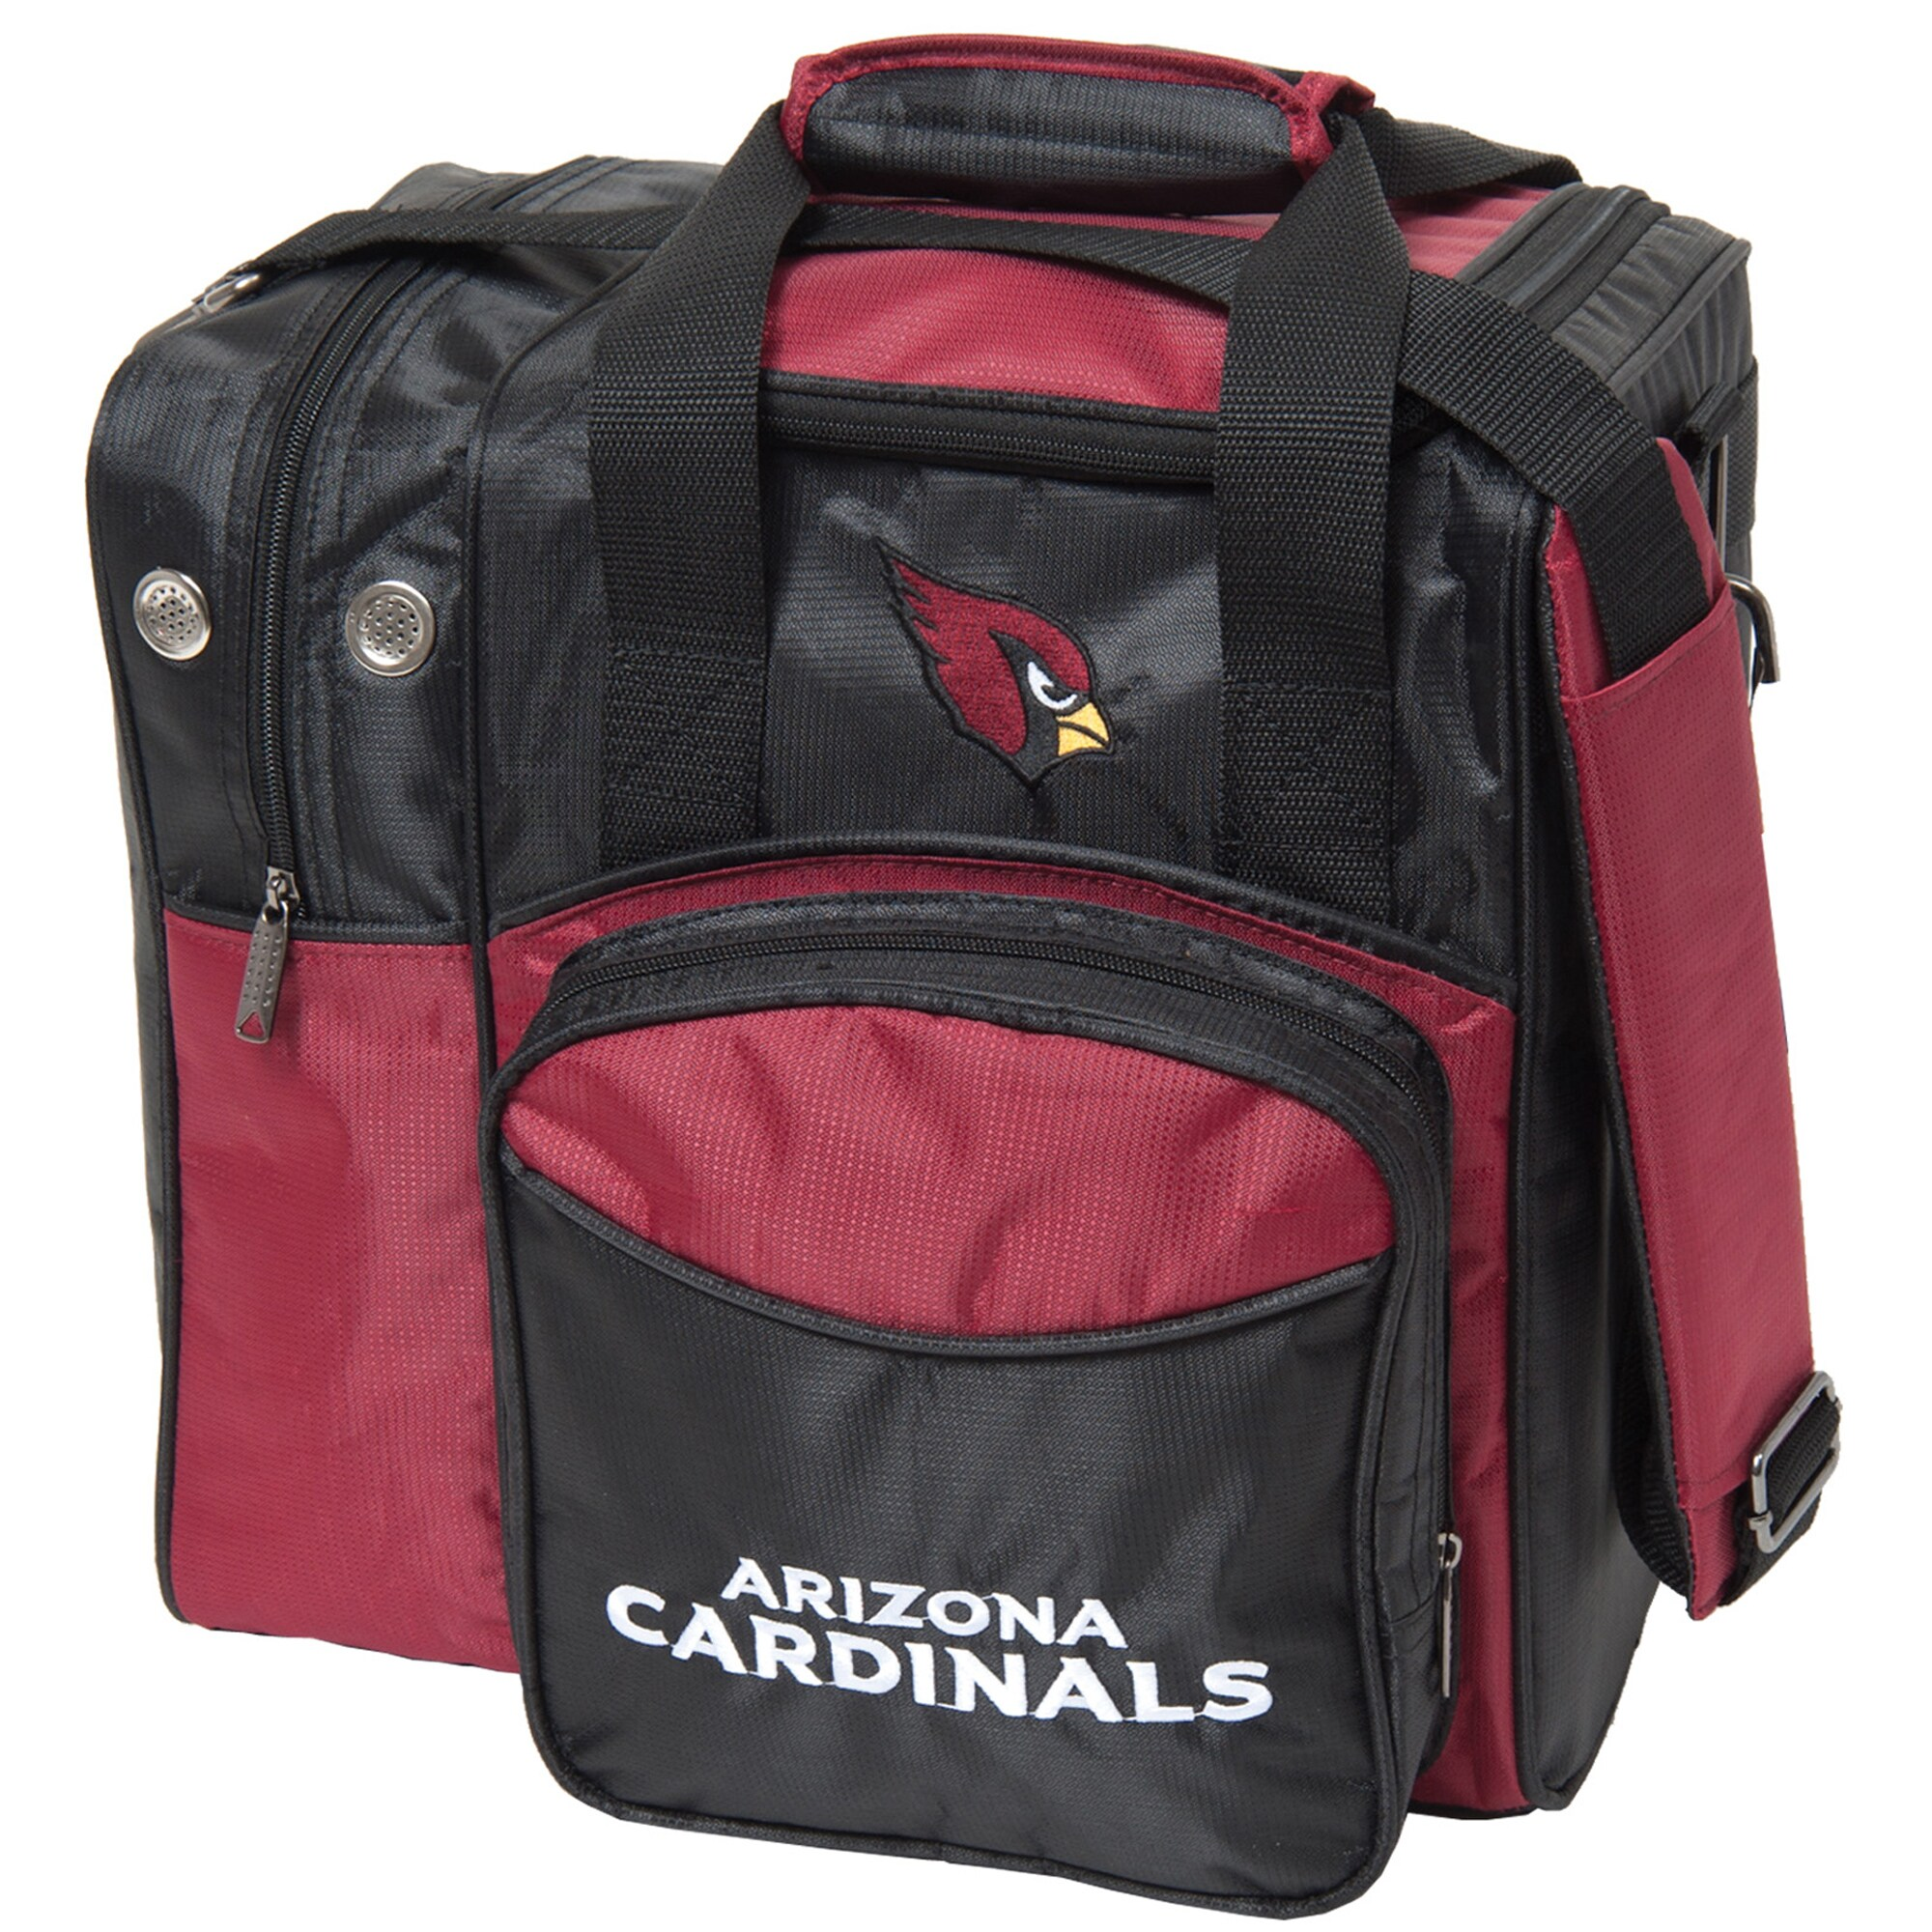 Arizona Cardinals Single Ball Bowling Tote